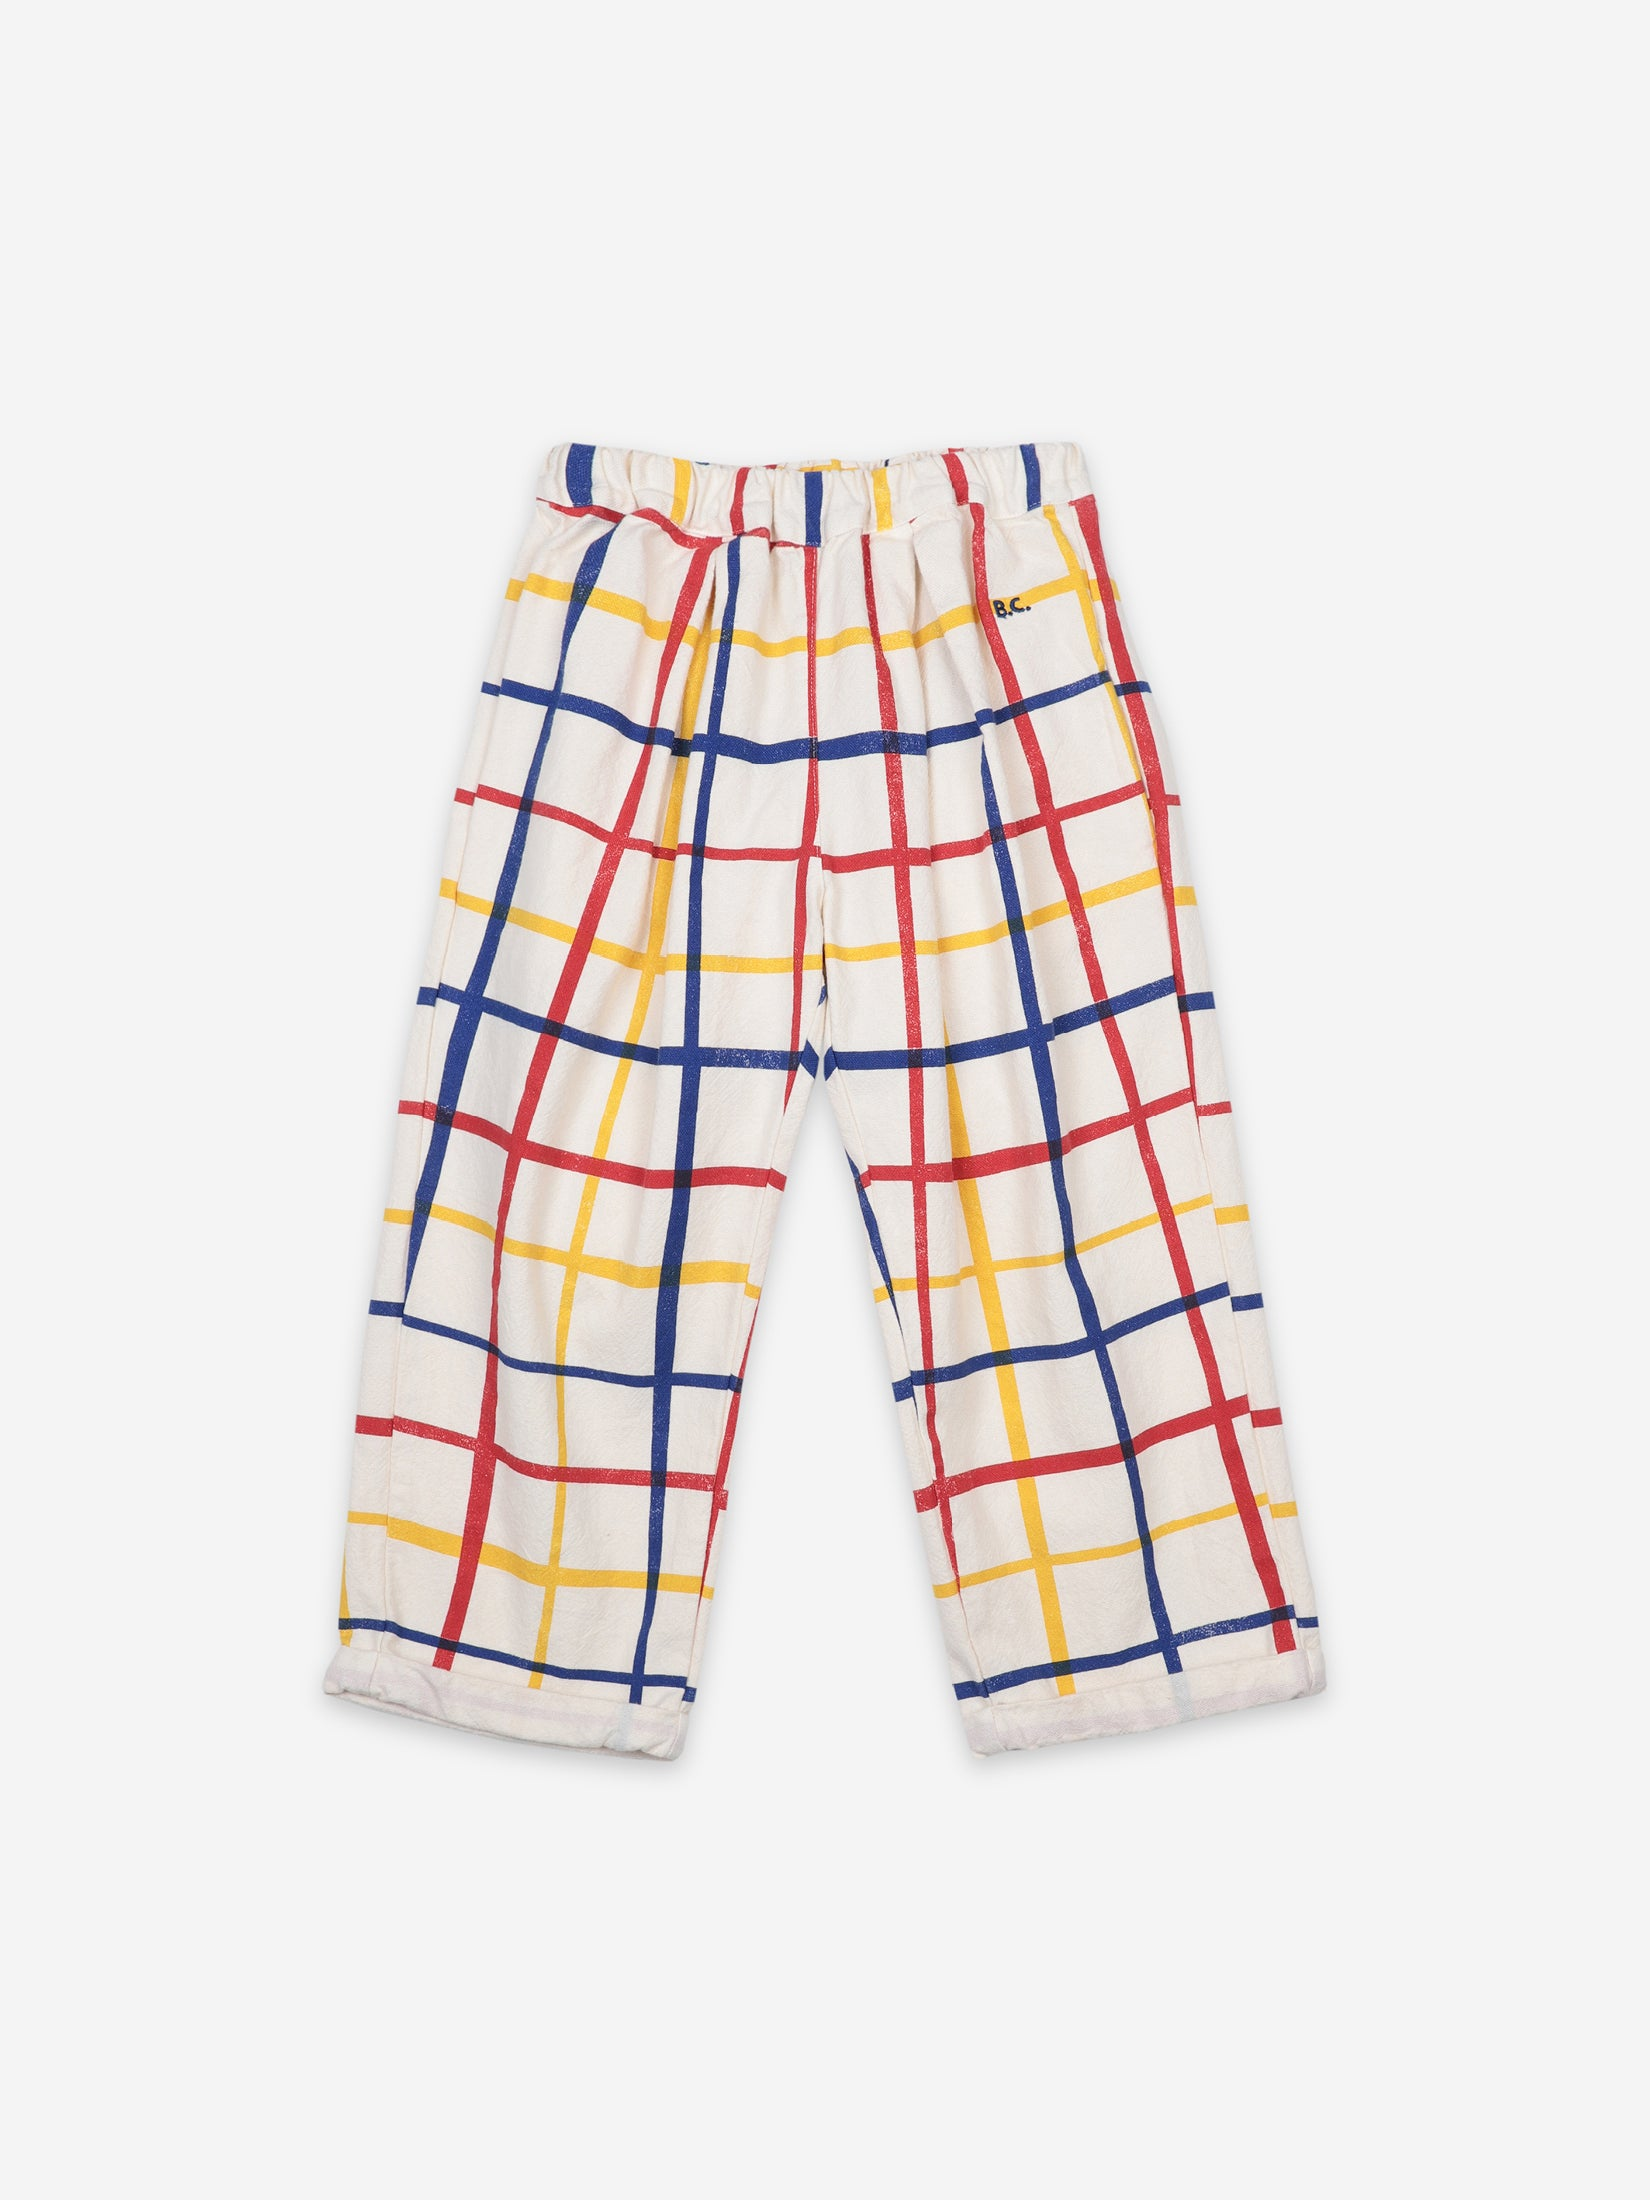 Bobo Choses Kids Multicolored Checkered Baggy Trousers | Sweet Threads